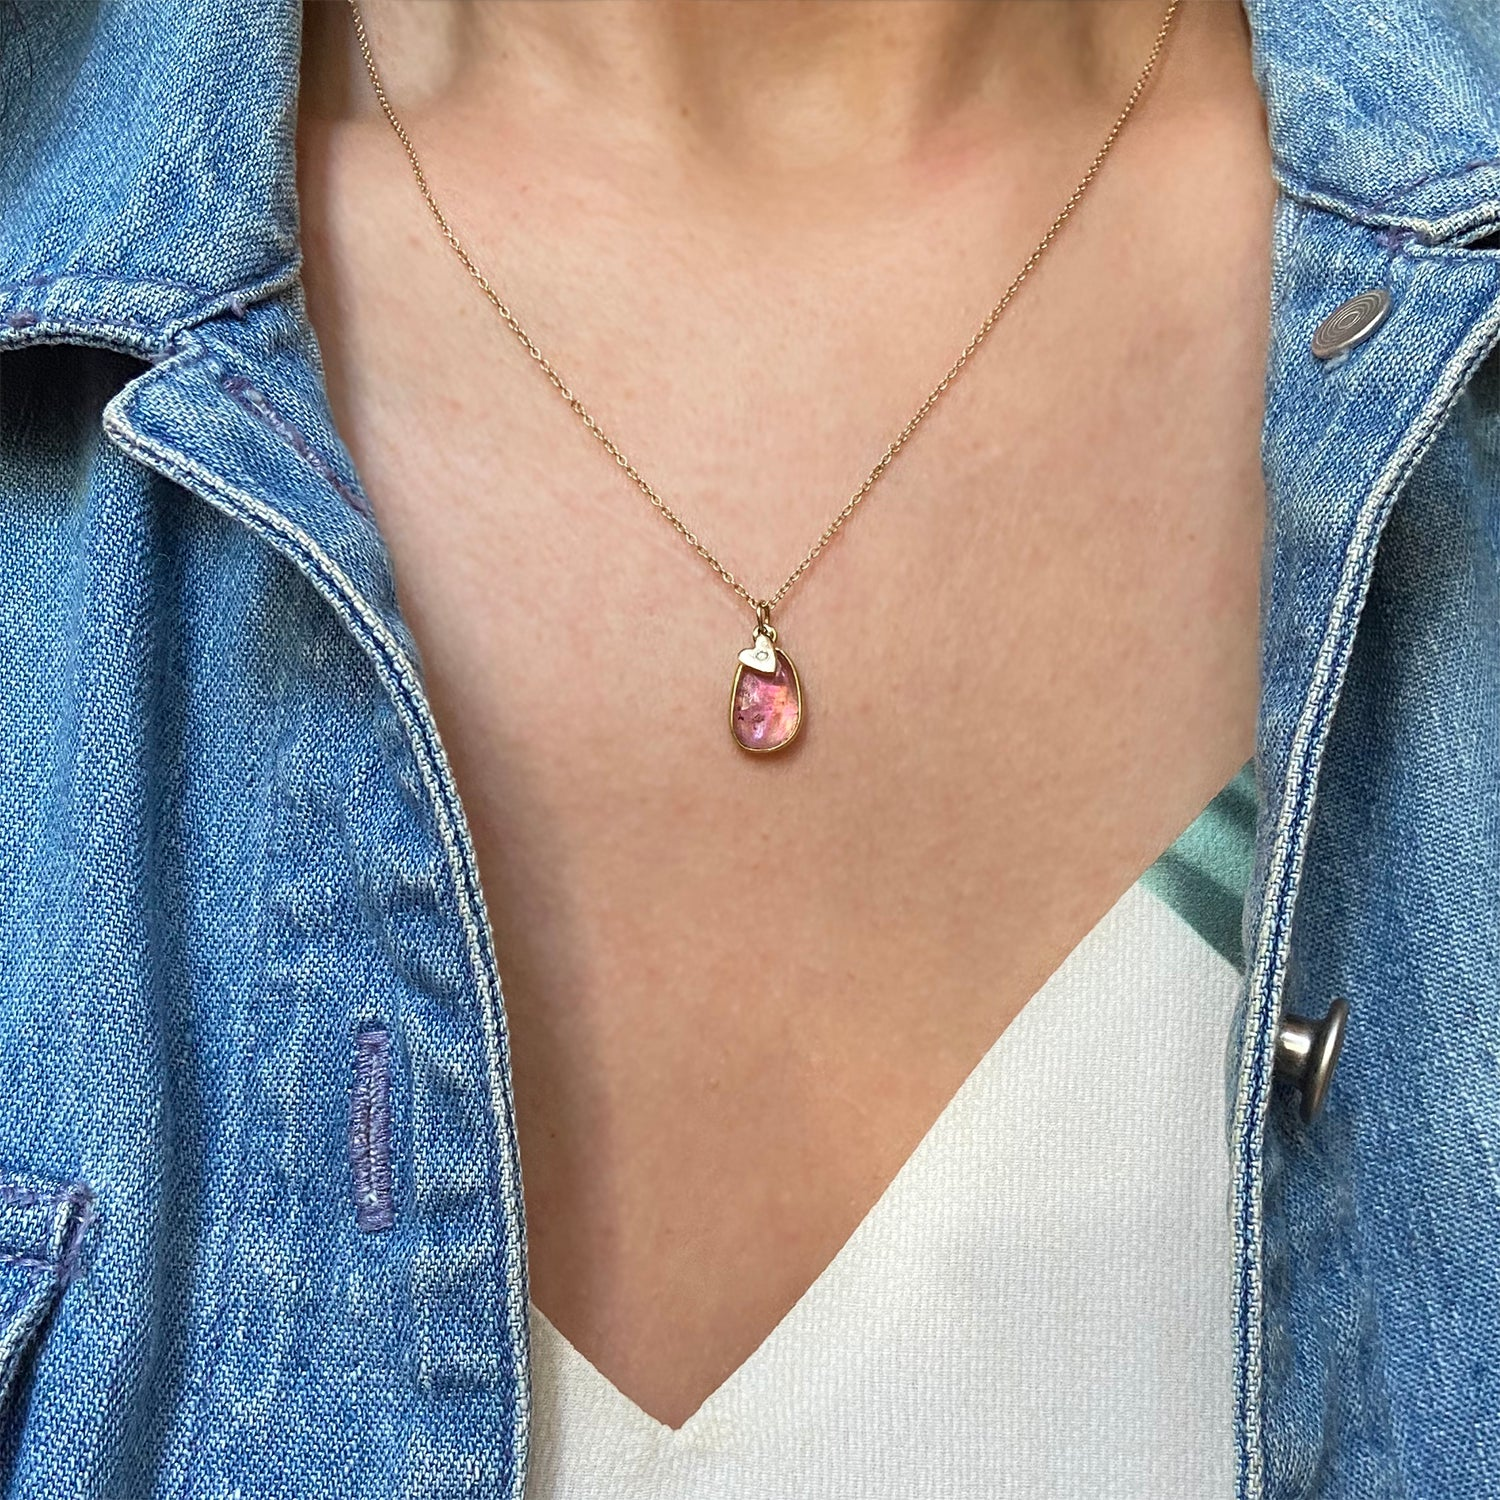 Pink Tourmaline Necklace With Diamond Heart Charm